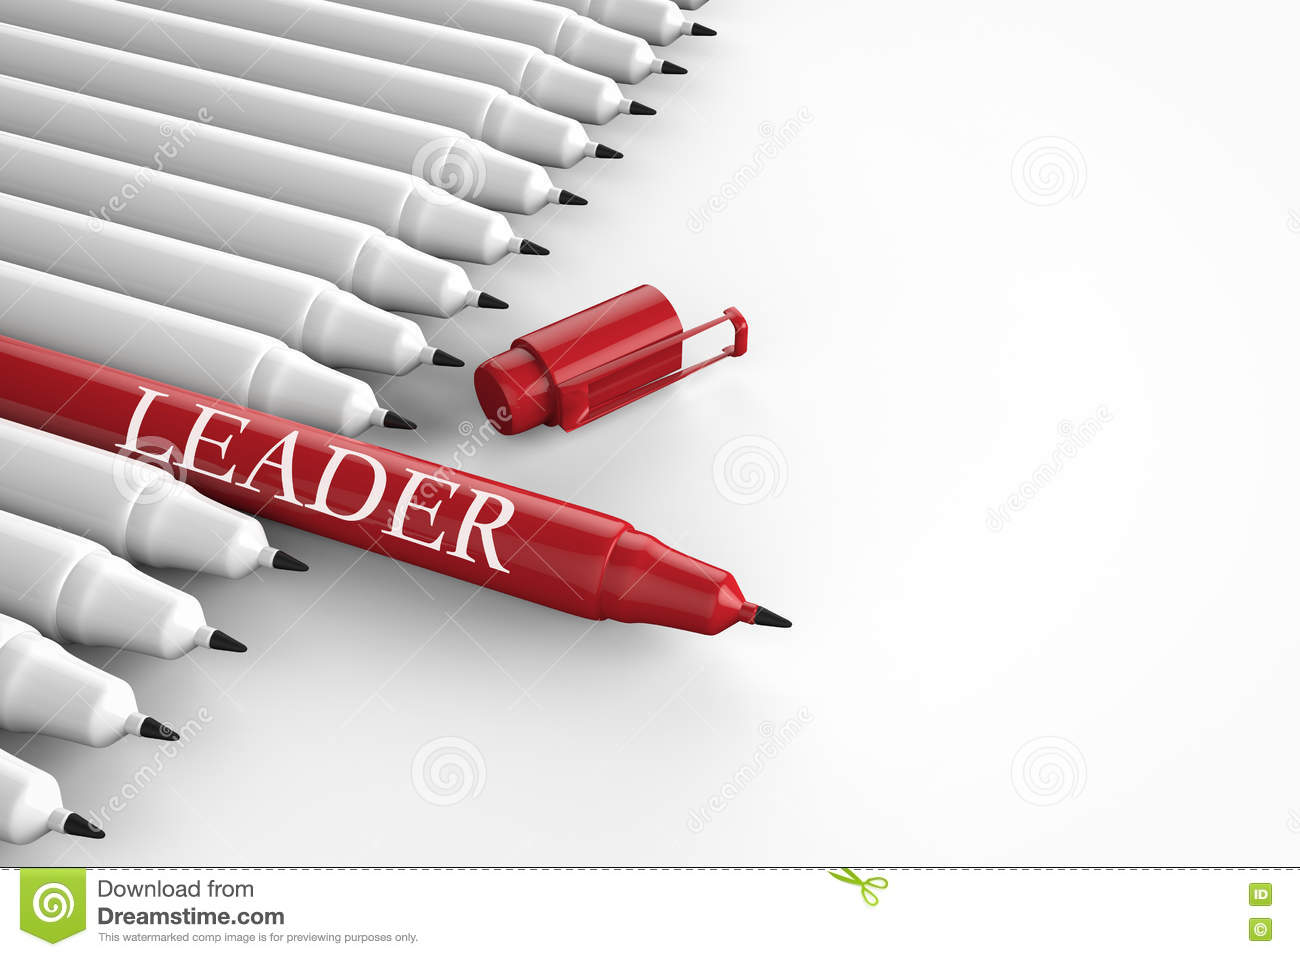 Leadership concept with red pen